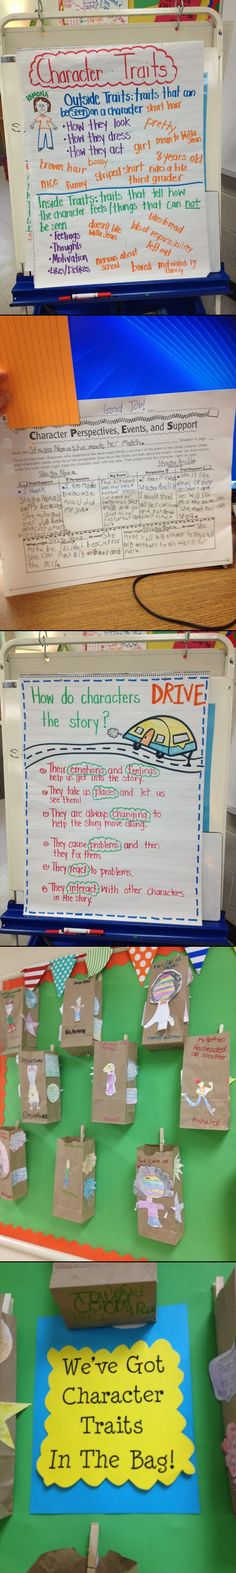 One teacher's excellent activities for teaching 'Character Traits'.